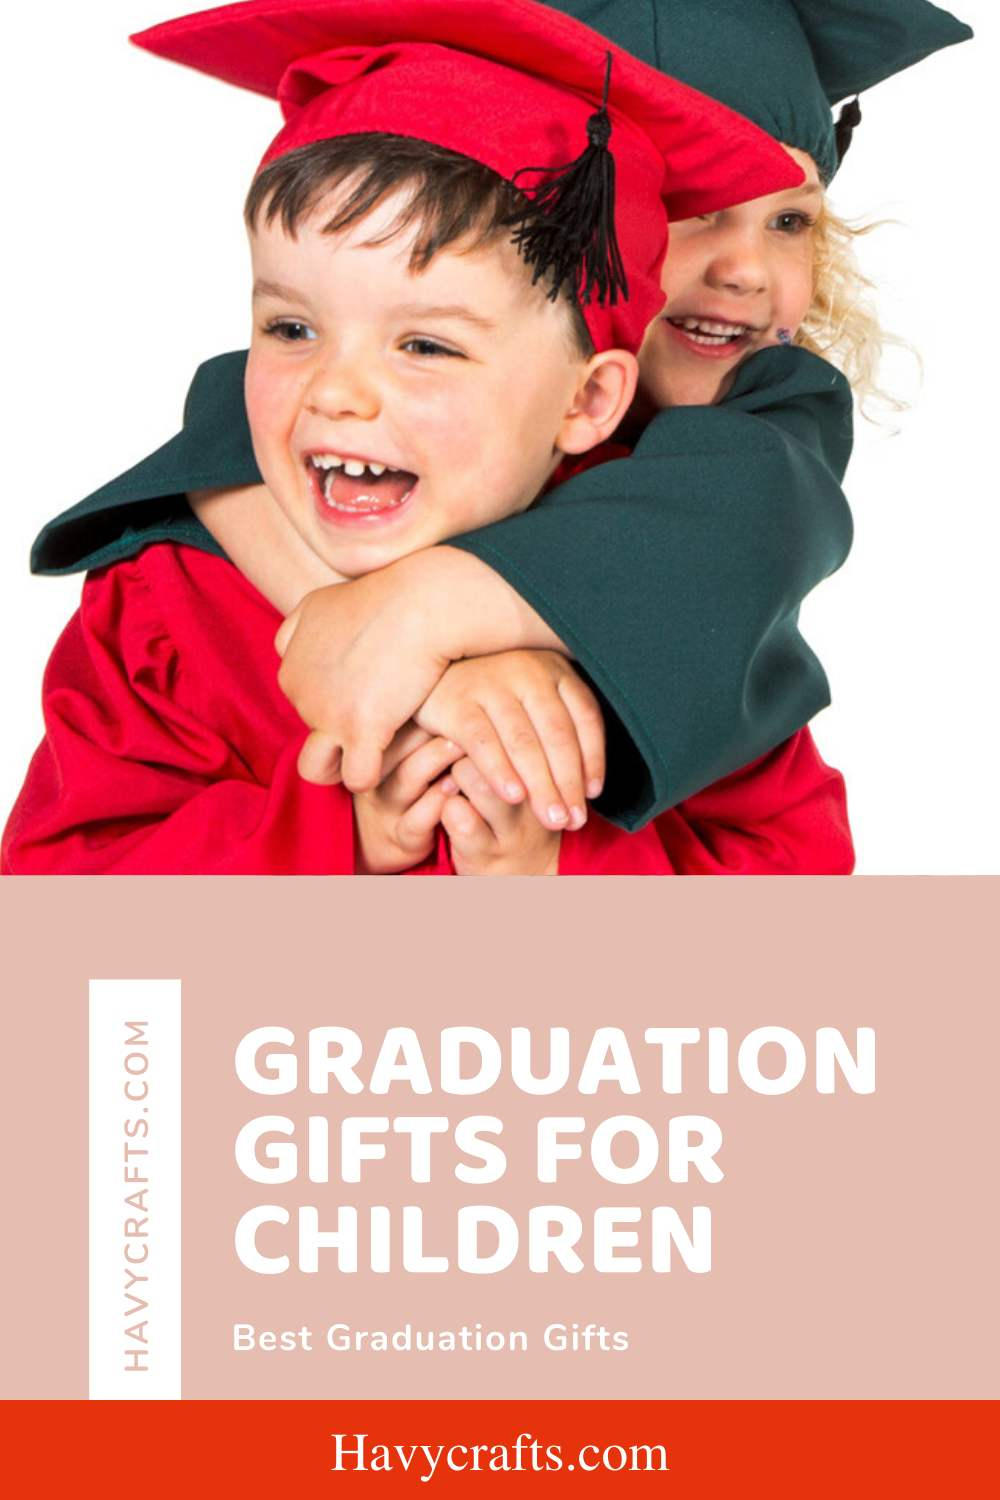 Graduation gifts for children